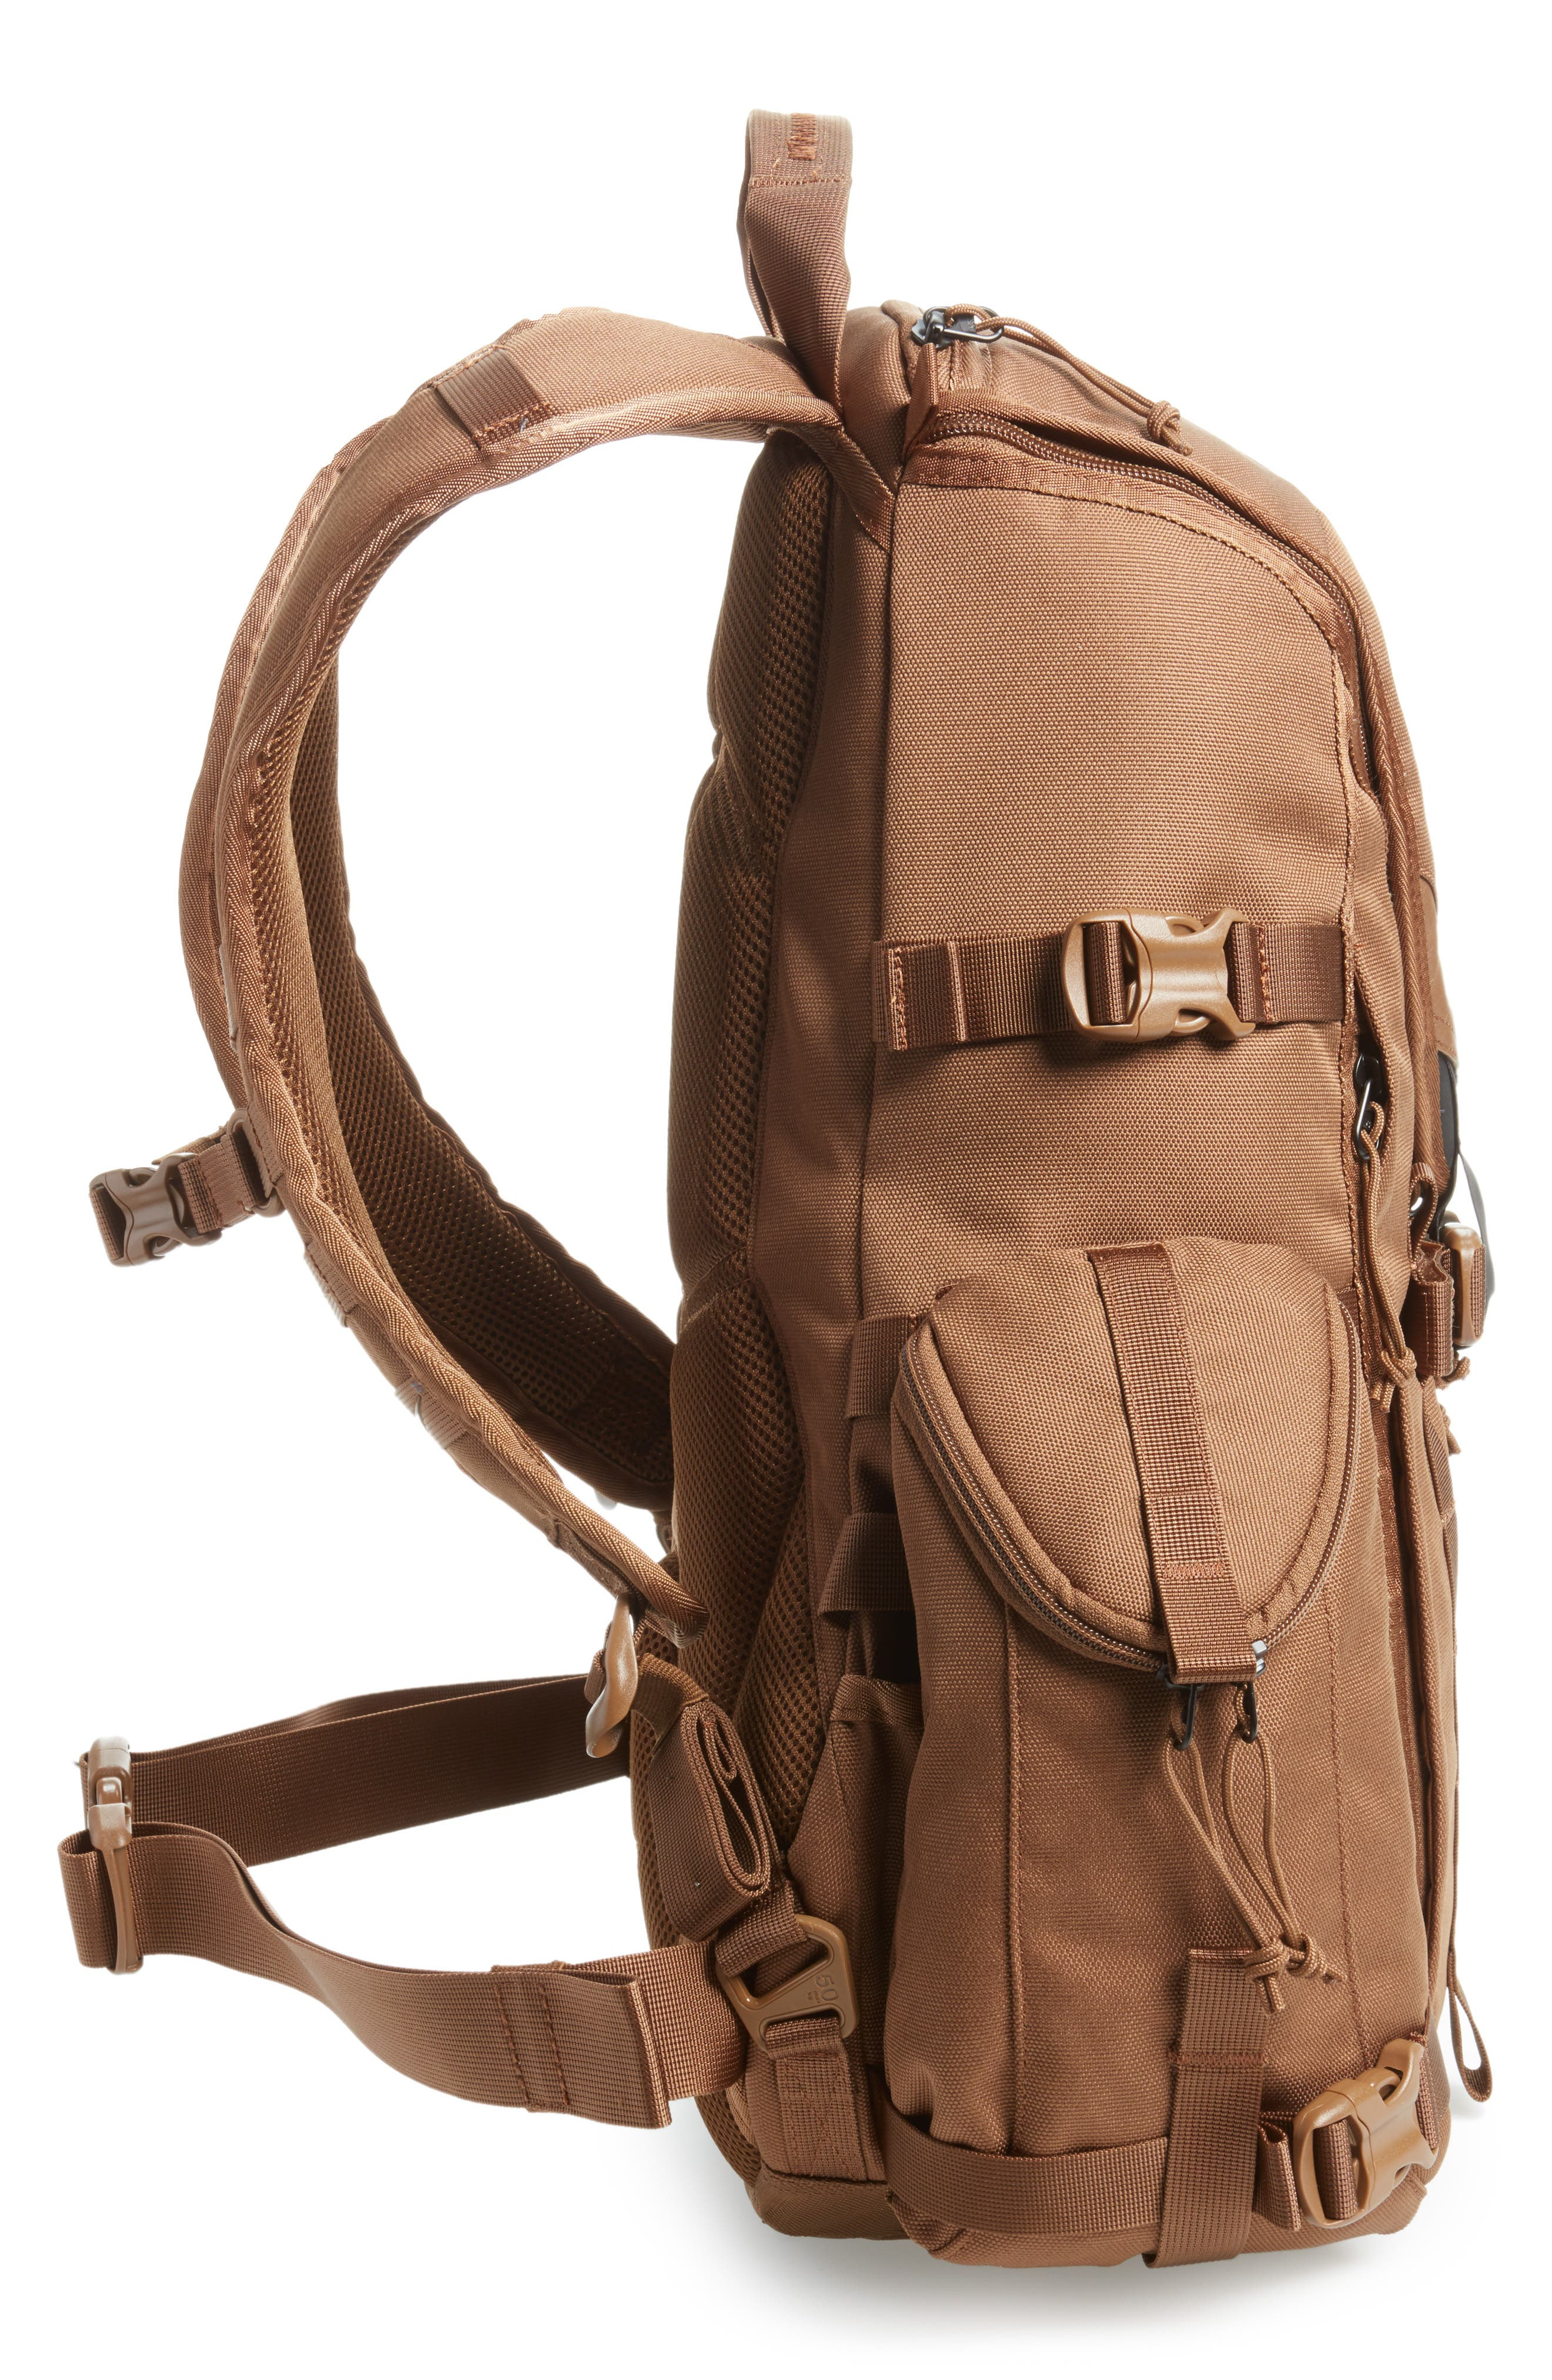 SFS Responder Backpack,                             Alternate thumbnail 4, color,                             Military Brown/ Military Brown